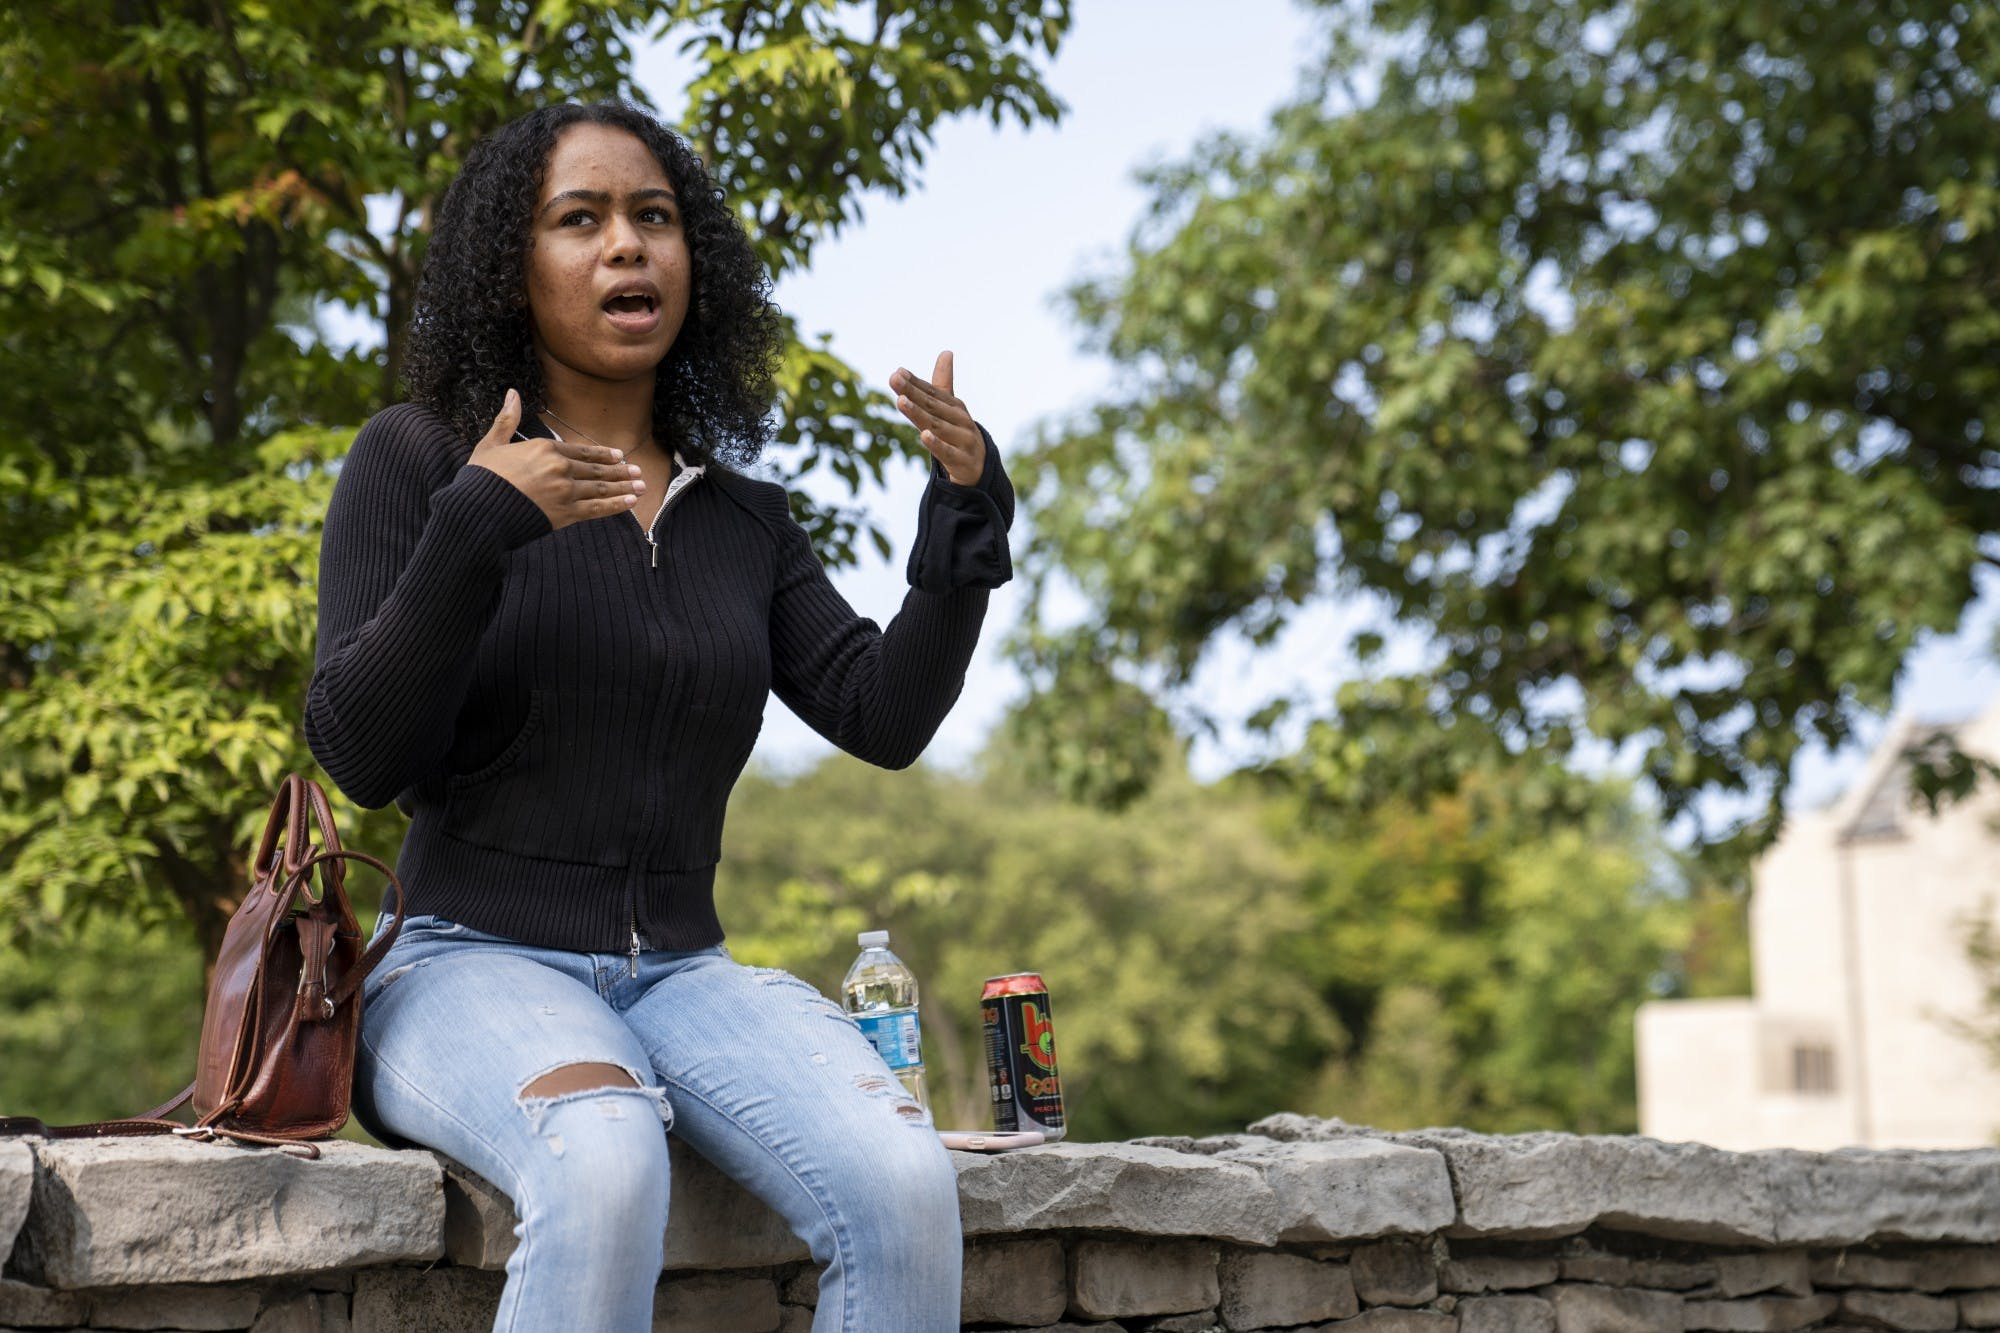 Aluko gestures to show how the incident happened. Around 60 other people were also at the bus stop when the man yelled at her, but none of them warned her or consoled her afterwards.